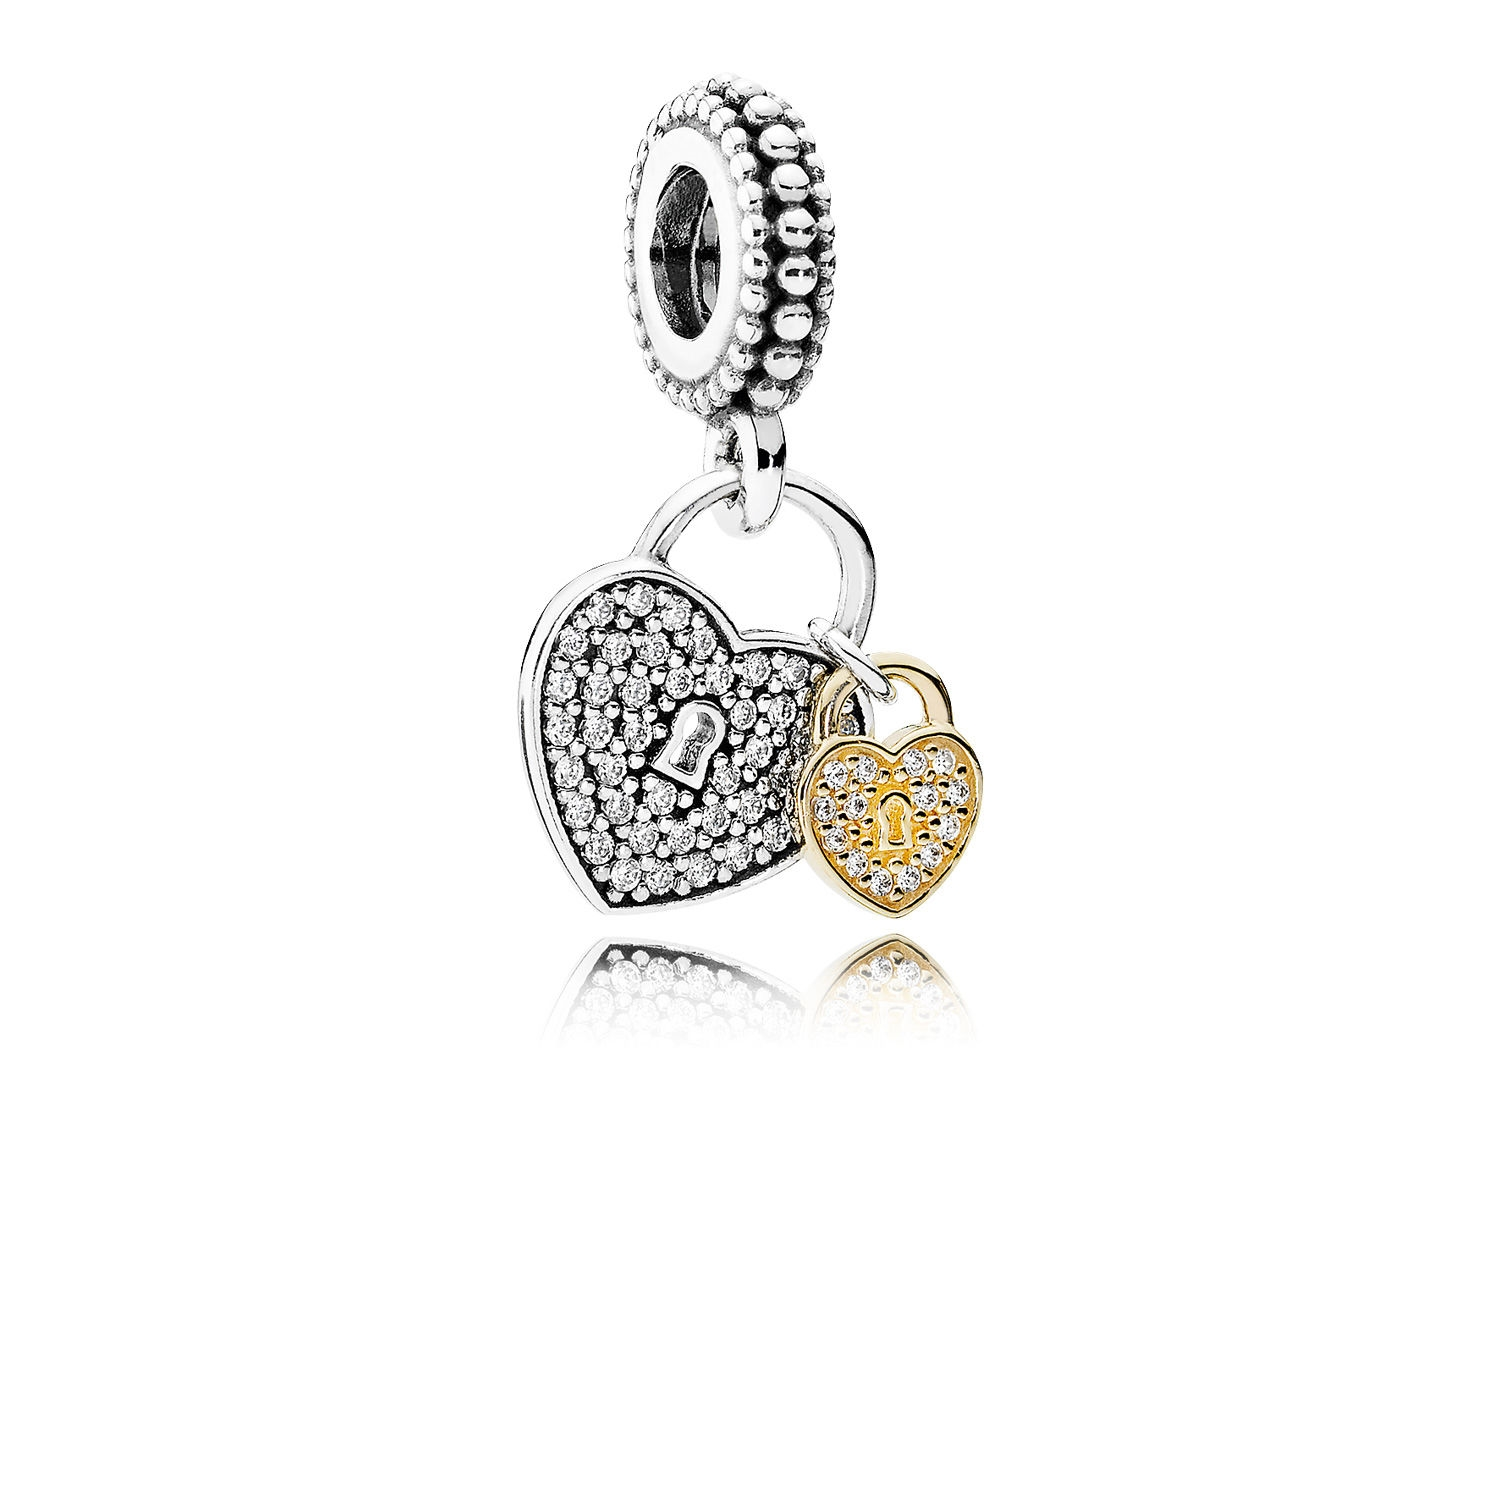 Pandora Love Locks Dangle Charm, Clear CZ 791807cz